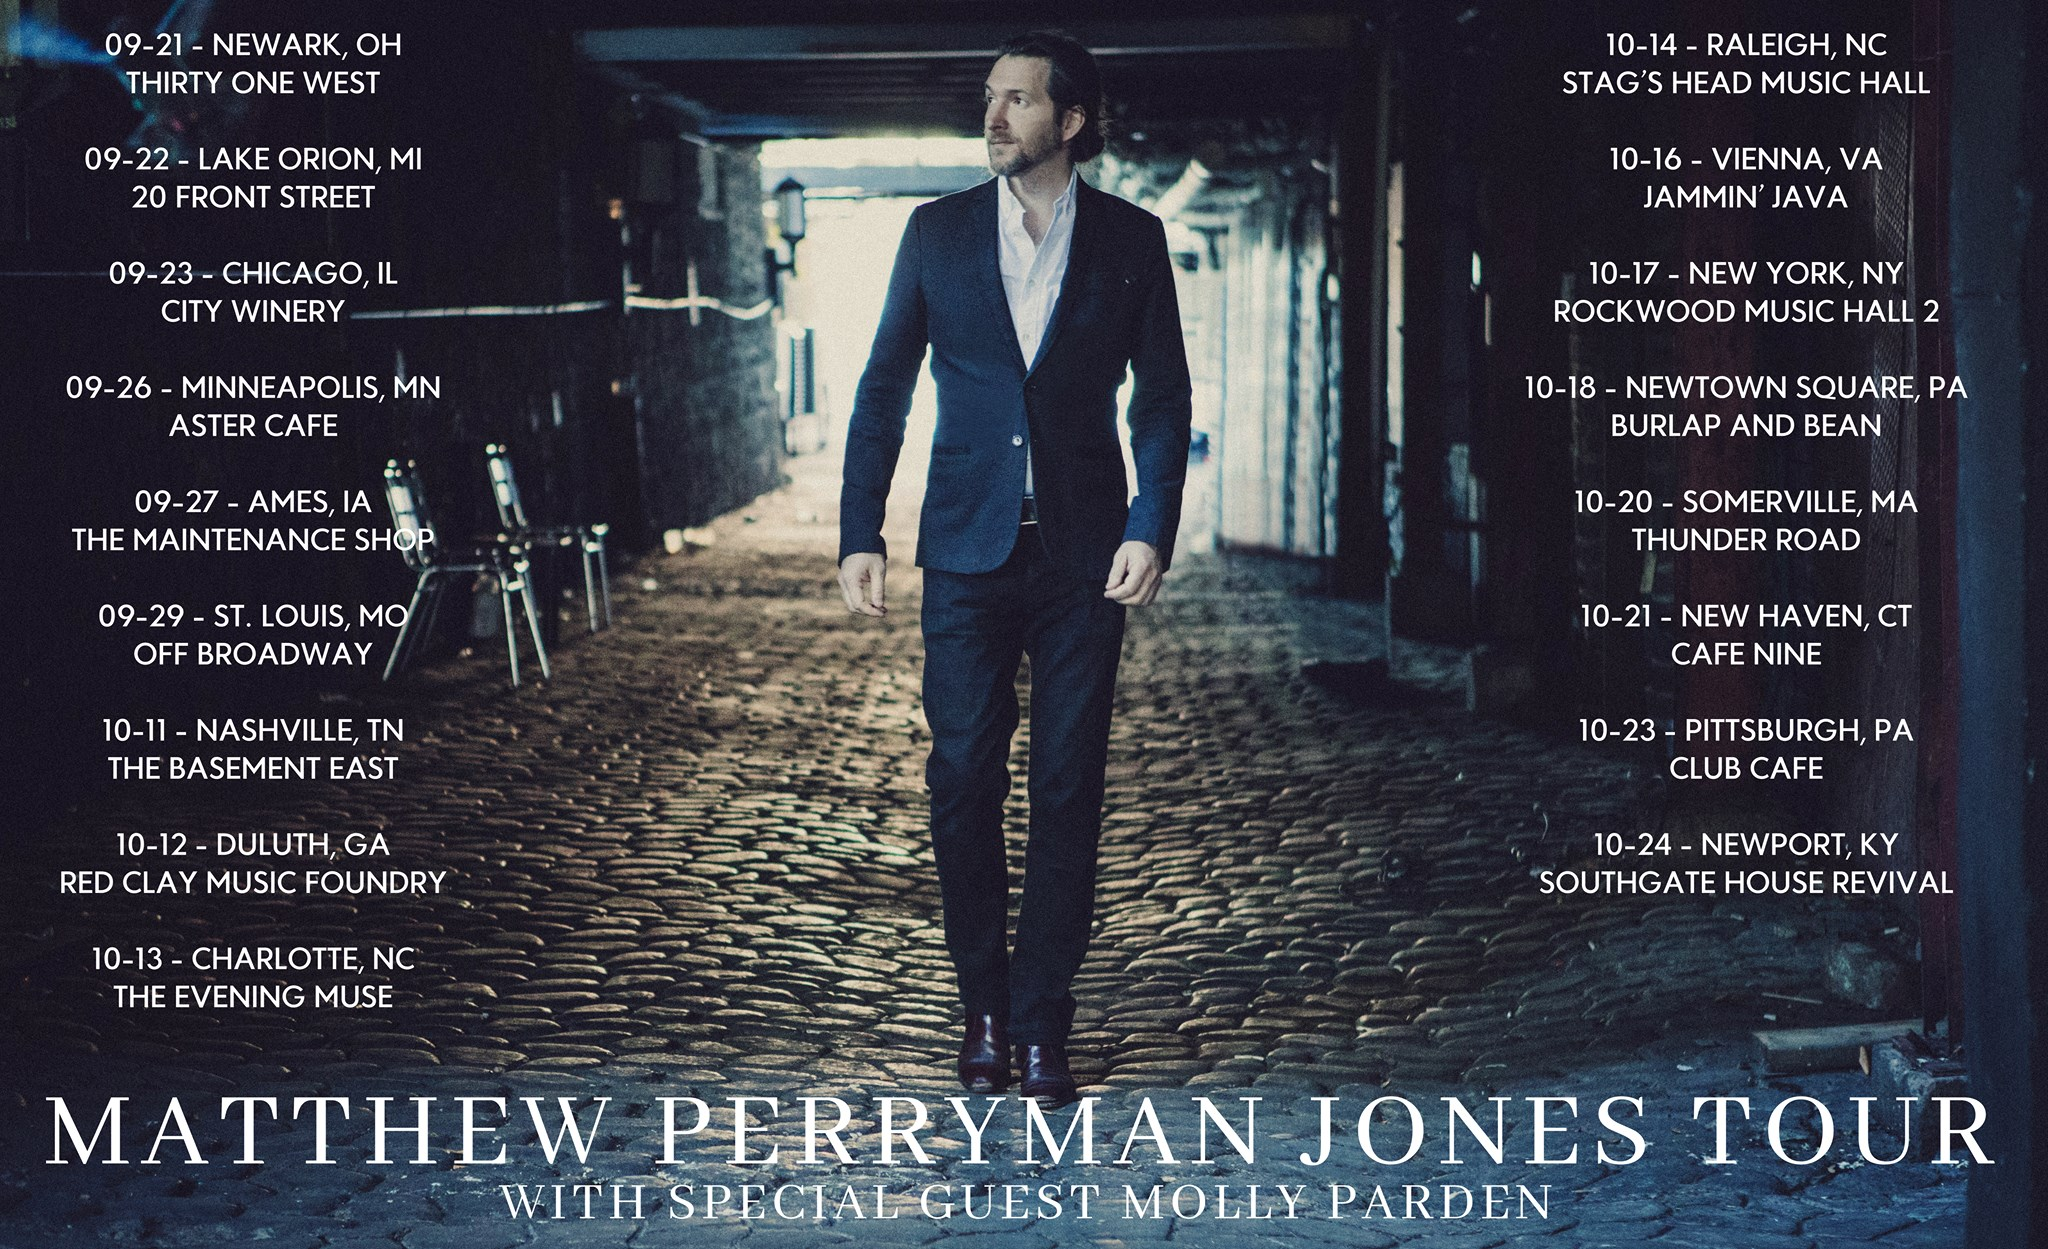 Matthew Perryman Jones 2018 tour poster